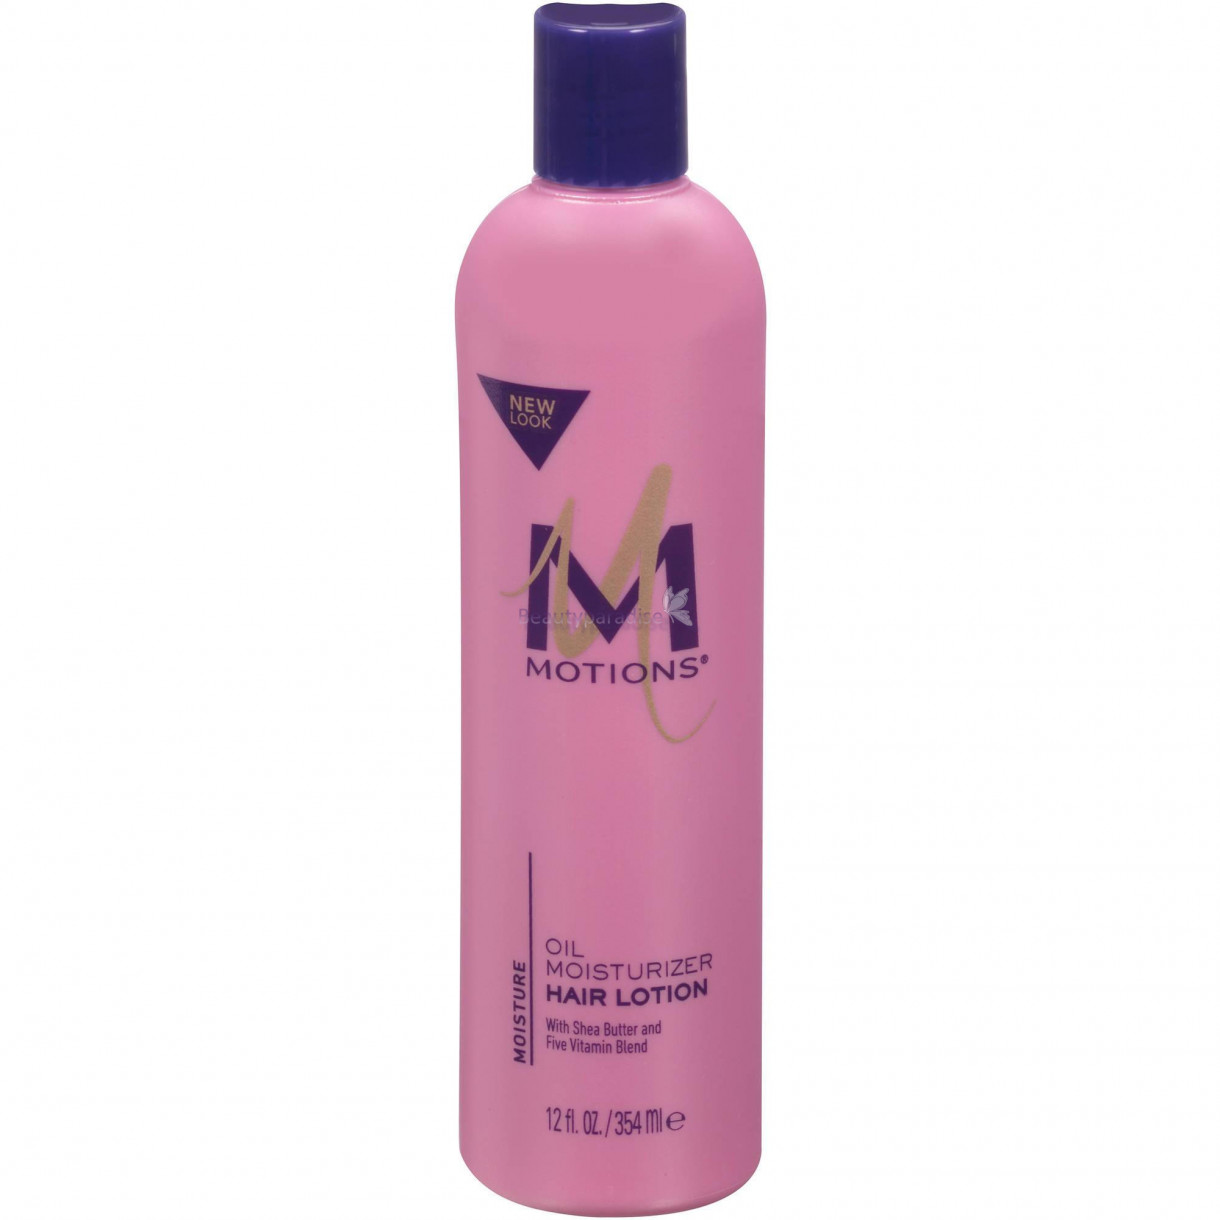 Motions Natural Hair Products Reviews